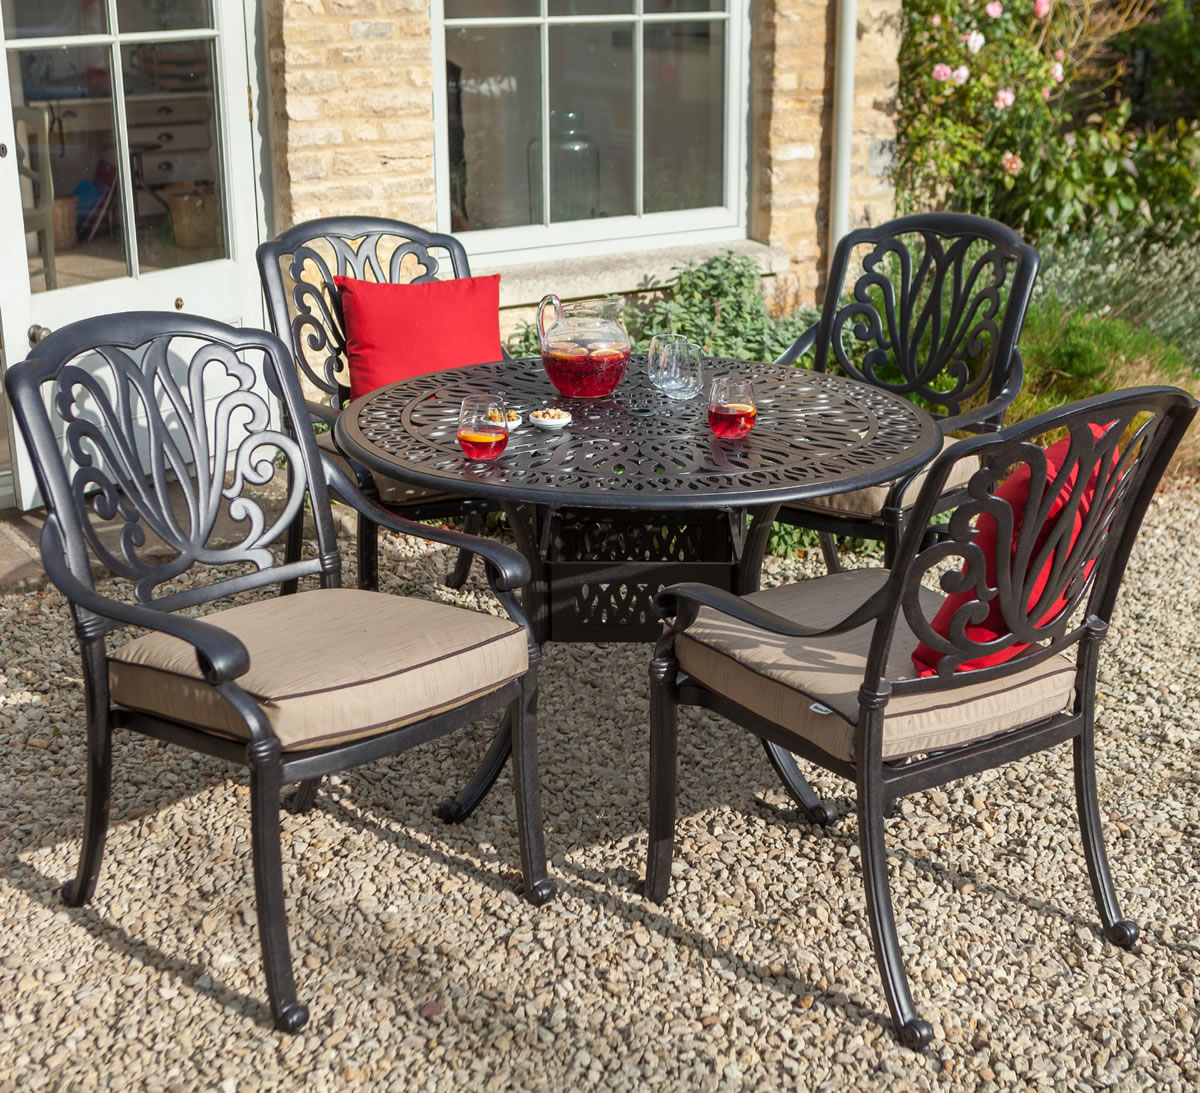 ... Extra Image Of Hartman Amalfi 4 Seater Round Set In Bronze With Fawn  Cushions ...